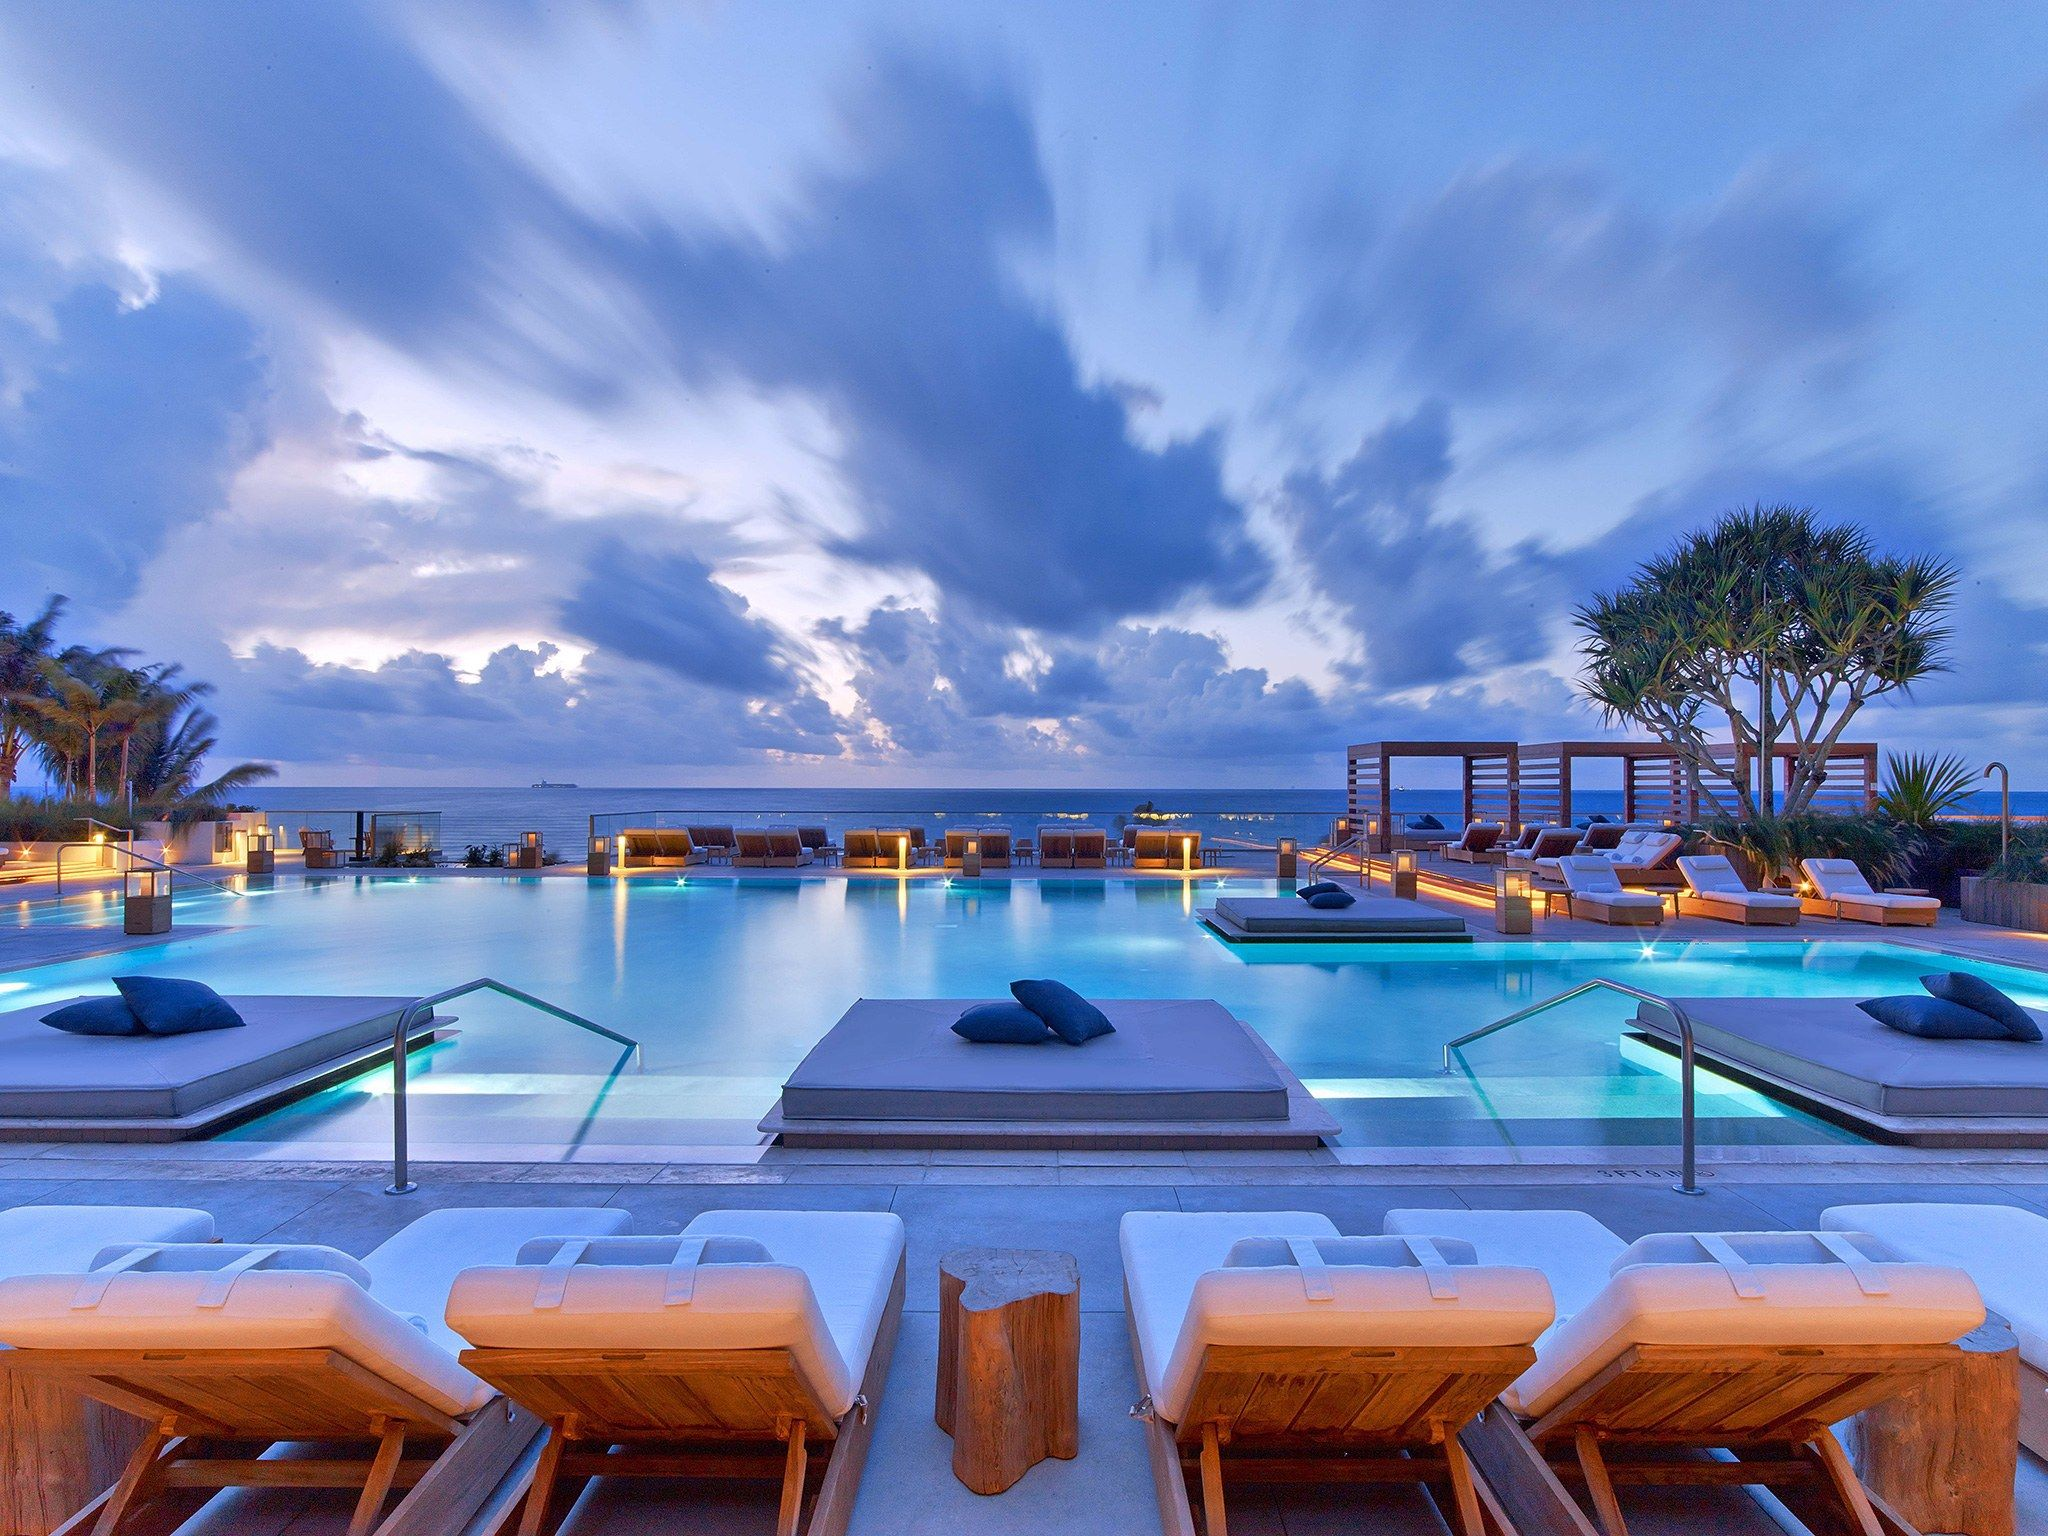 Cond 233 nast traveler 2013 hot list of top new hotels worldwide - Best New Hotels In The World Hot List 2017